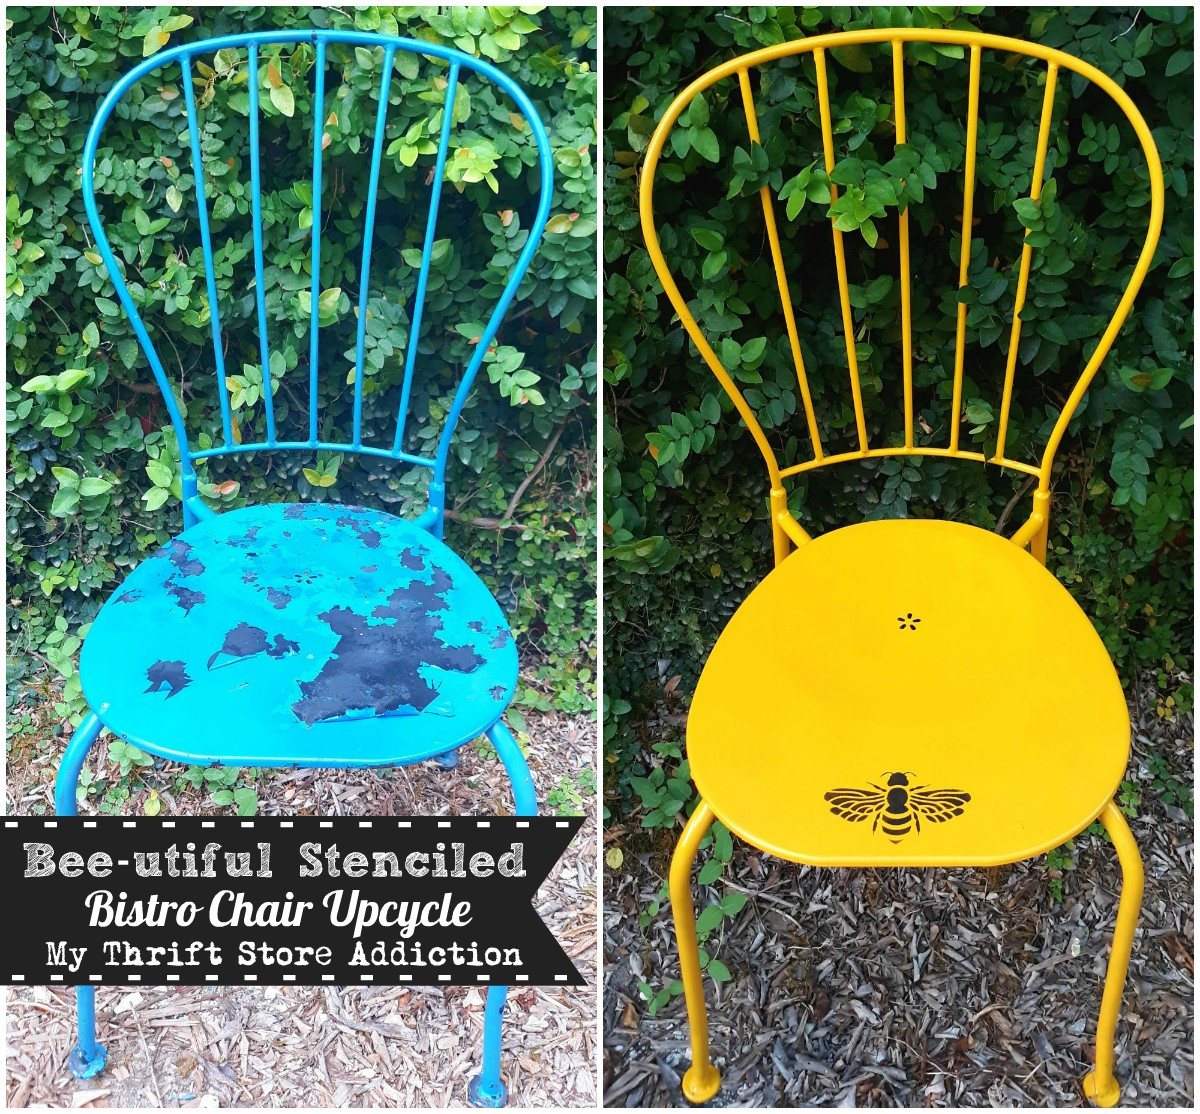 Beautiful bistro chair upcycle